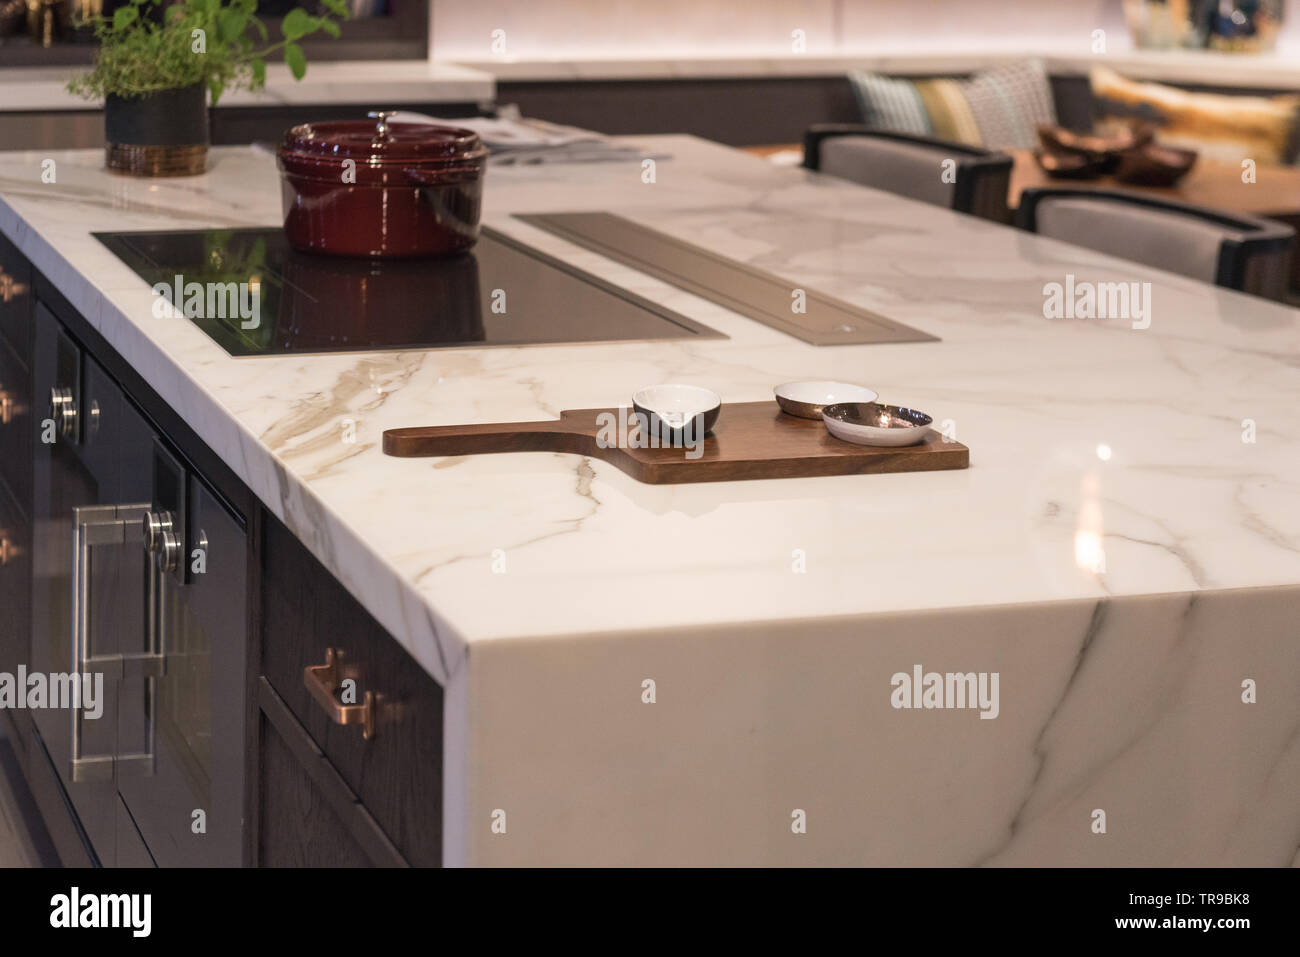 Marble Top Kitchen Island With Ceramic Bowls On Wooden Board Stock Photo Alamy